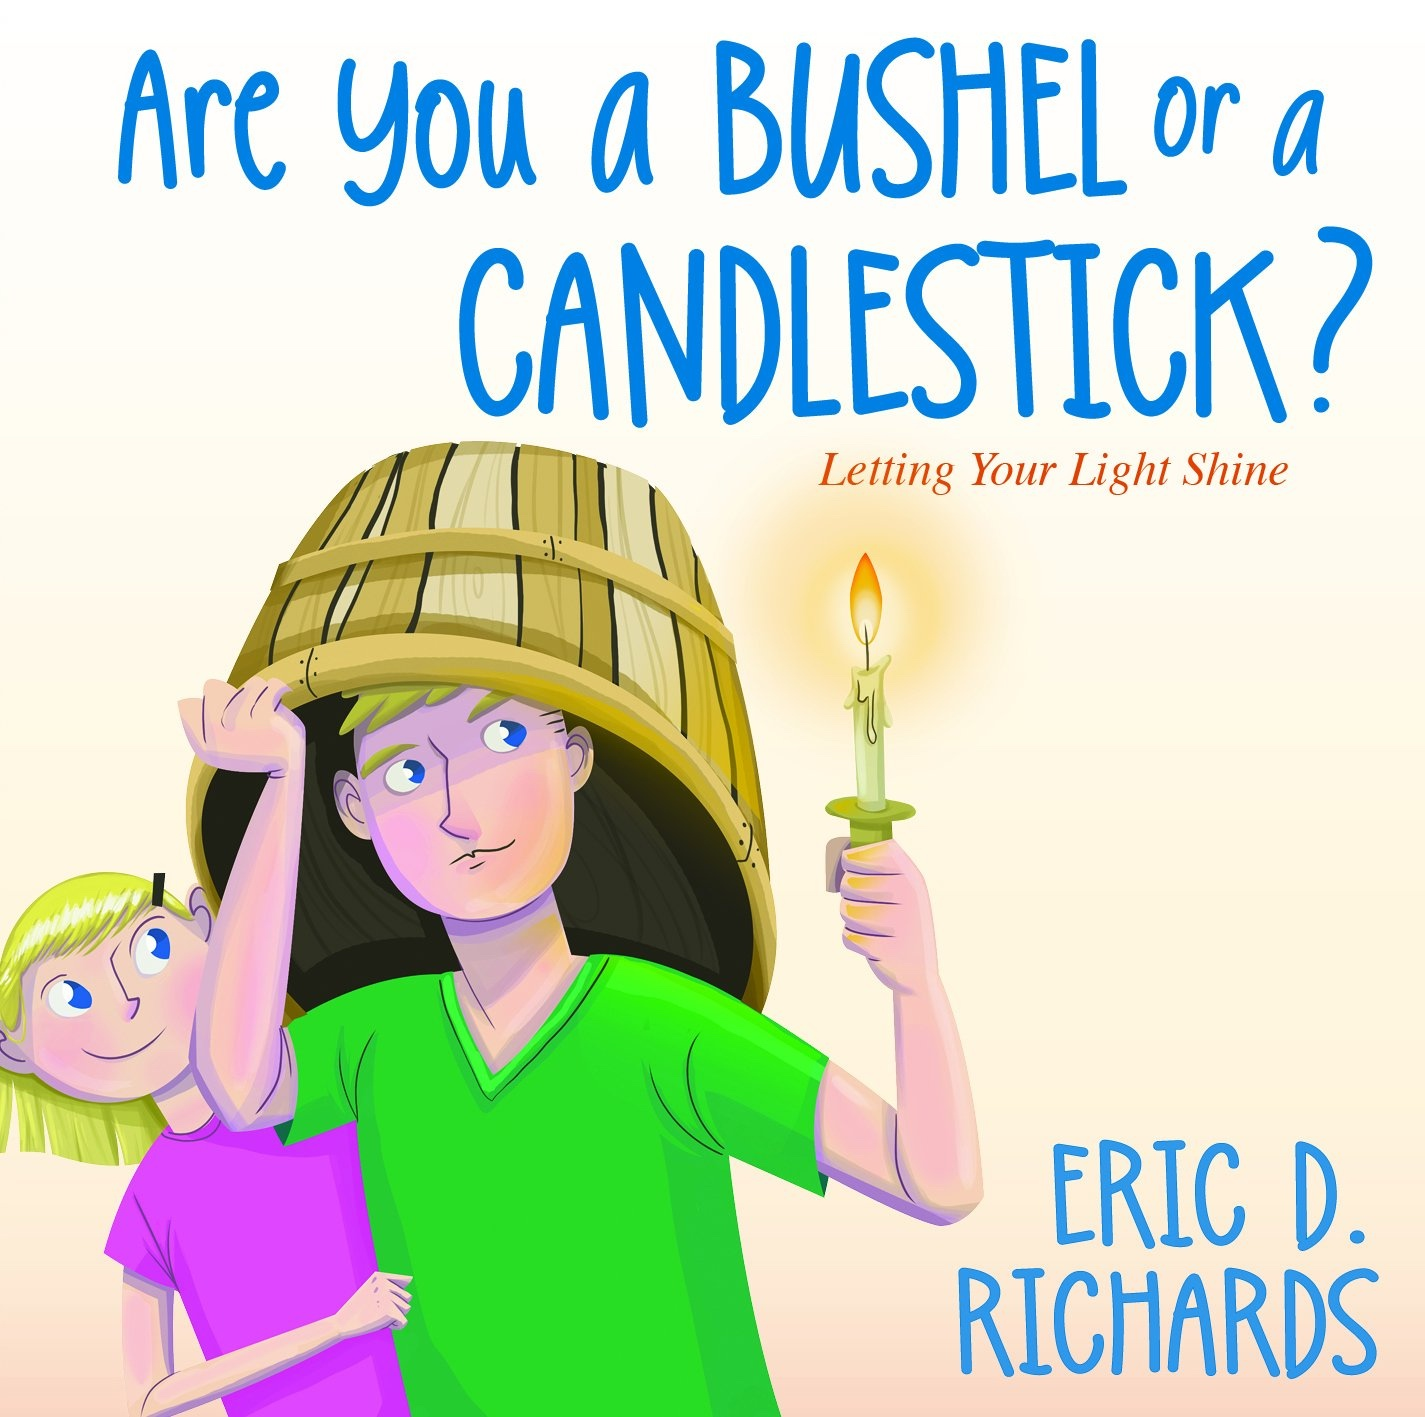 Image for Are You a Bushel or a Candlestick?